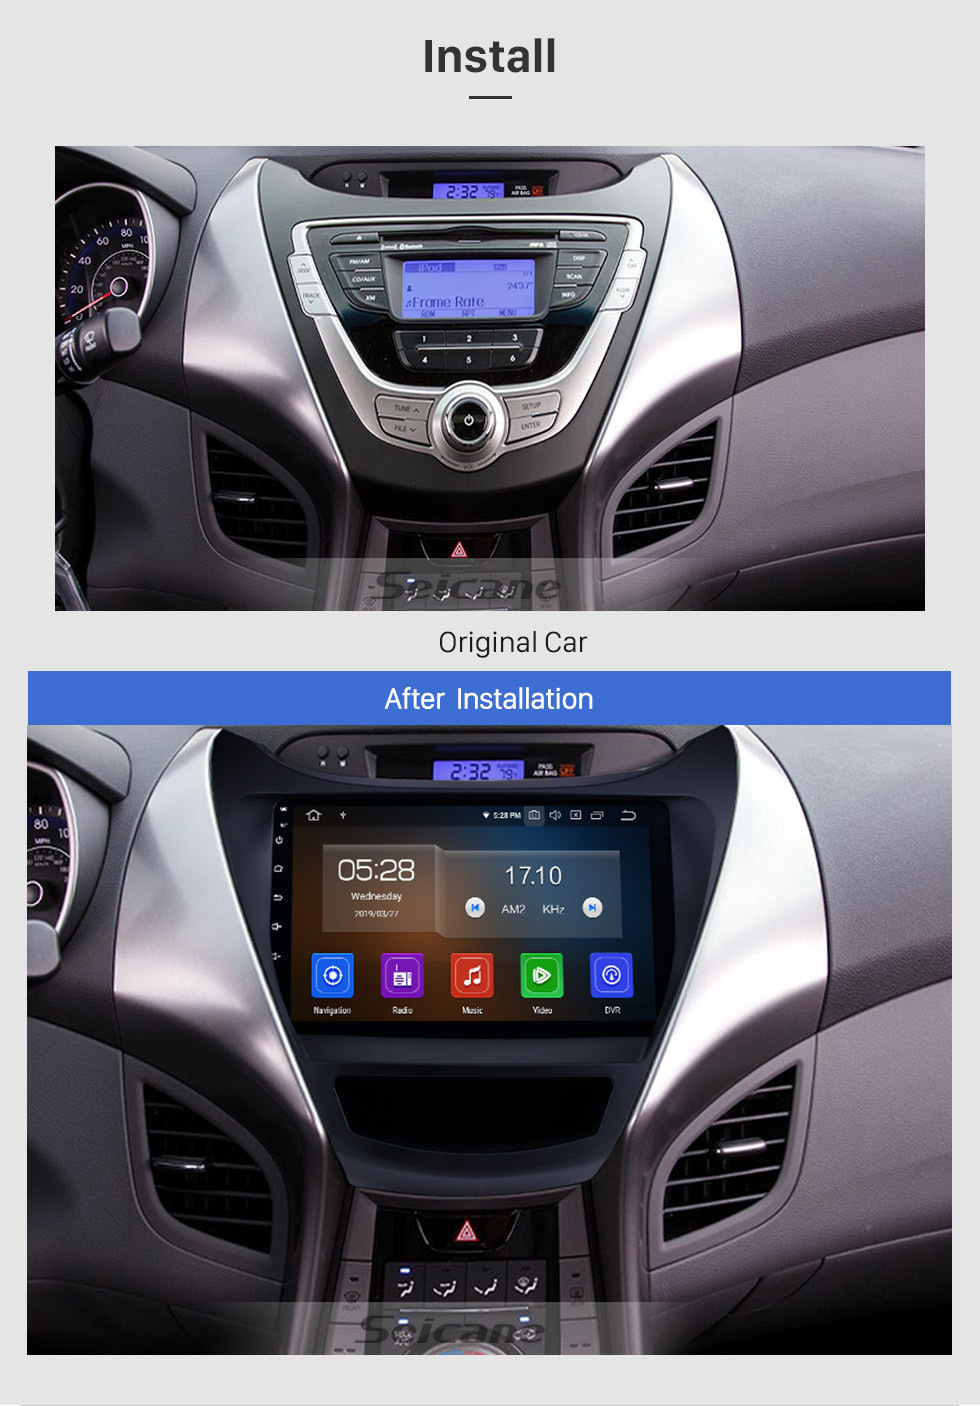 Seicane OEM 9 inch 2012 2013 Hyundai Elantra Android 10.0 Radio GPS  navigation system with HD 1024*600 touch screen Bluetooth OBD2 DVR Rearview camera TV 1080P Video 3G WIFI DVD player Steering Wheel Control USB Mirror link